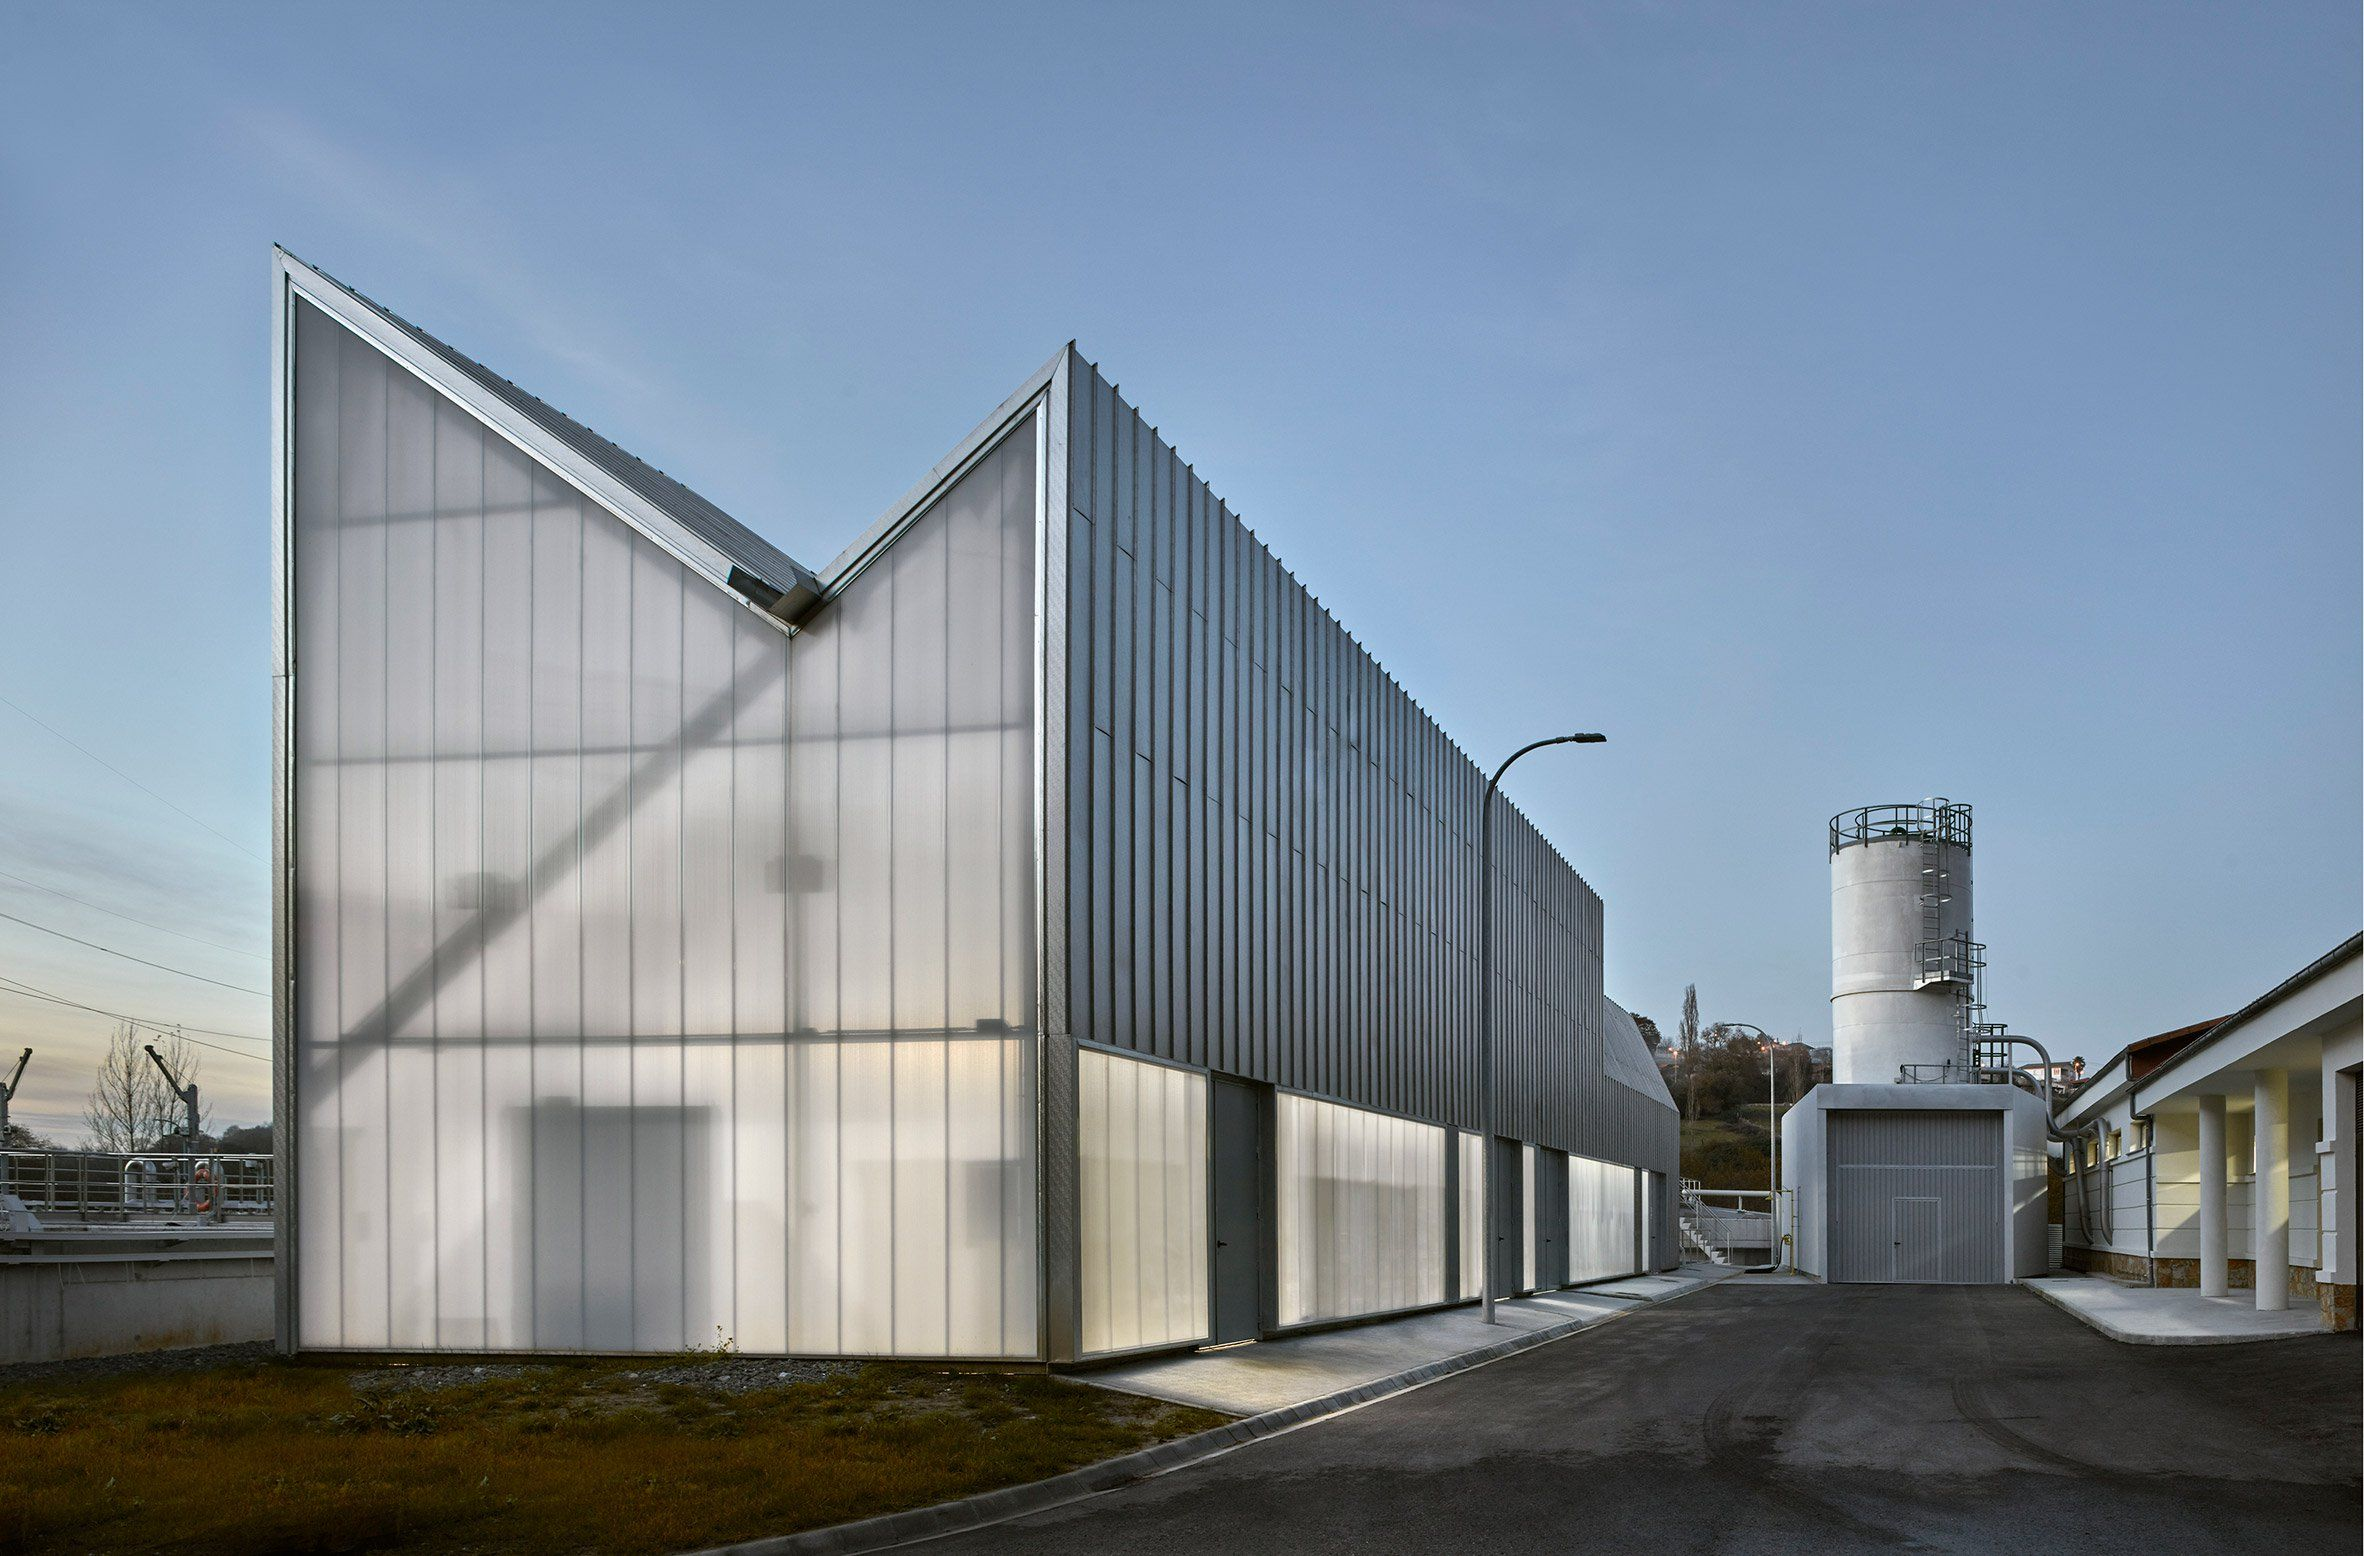 Padilla Nicas Arquitectos Completes Sewage Plant Featuring Asymmetric Pitched Roofs Factory Architecture Sewage Treatment Plant Roof Architecture